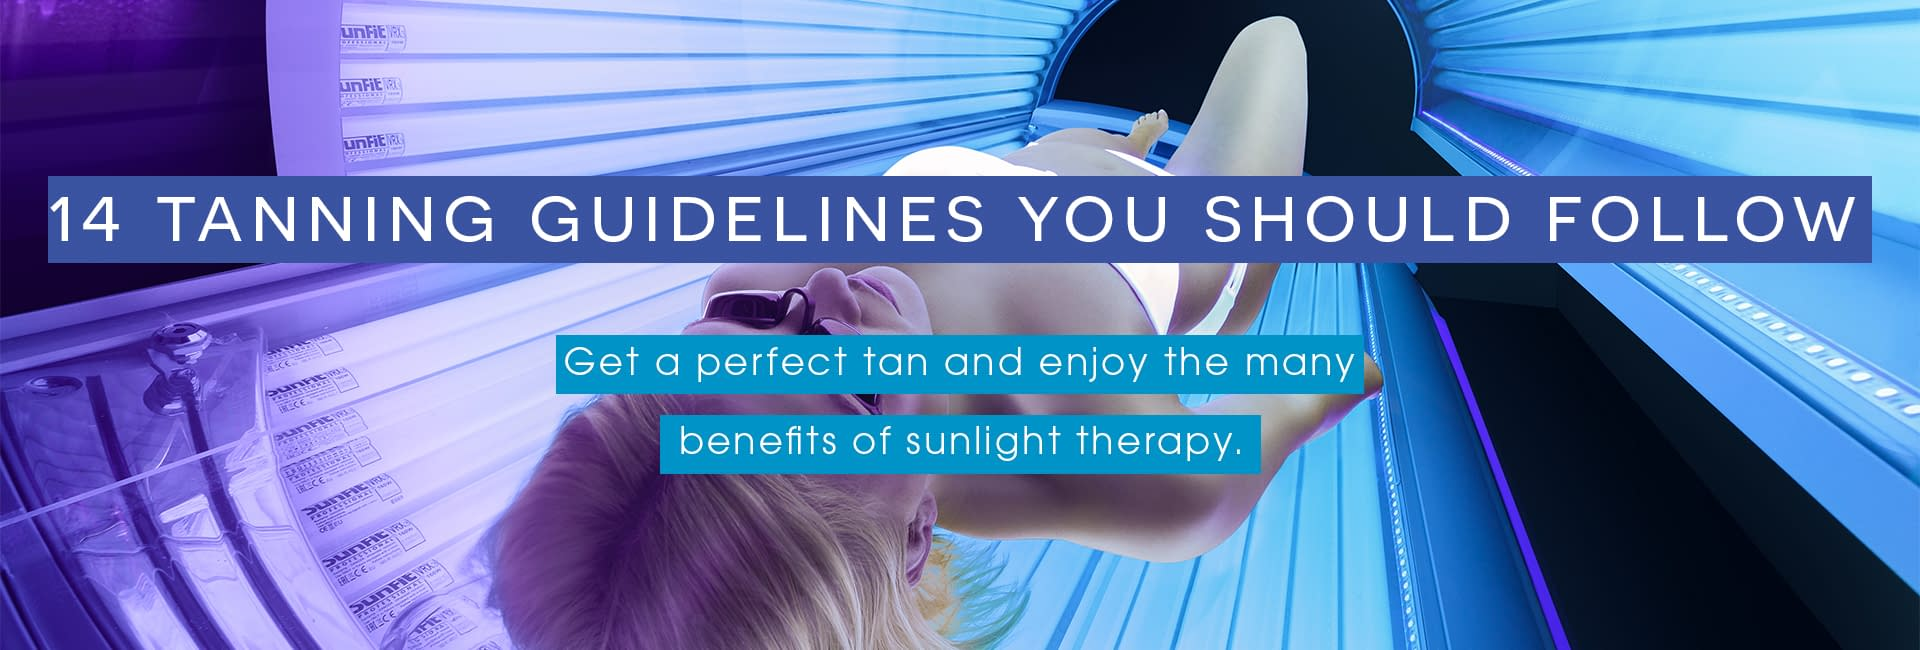 tanning guidelines